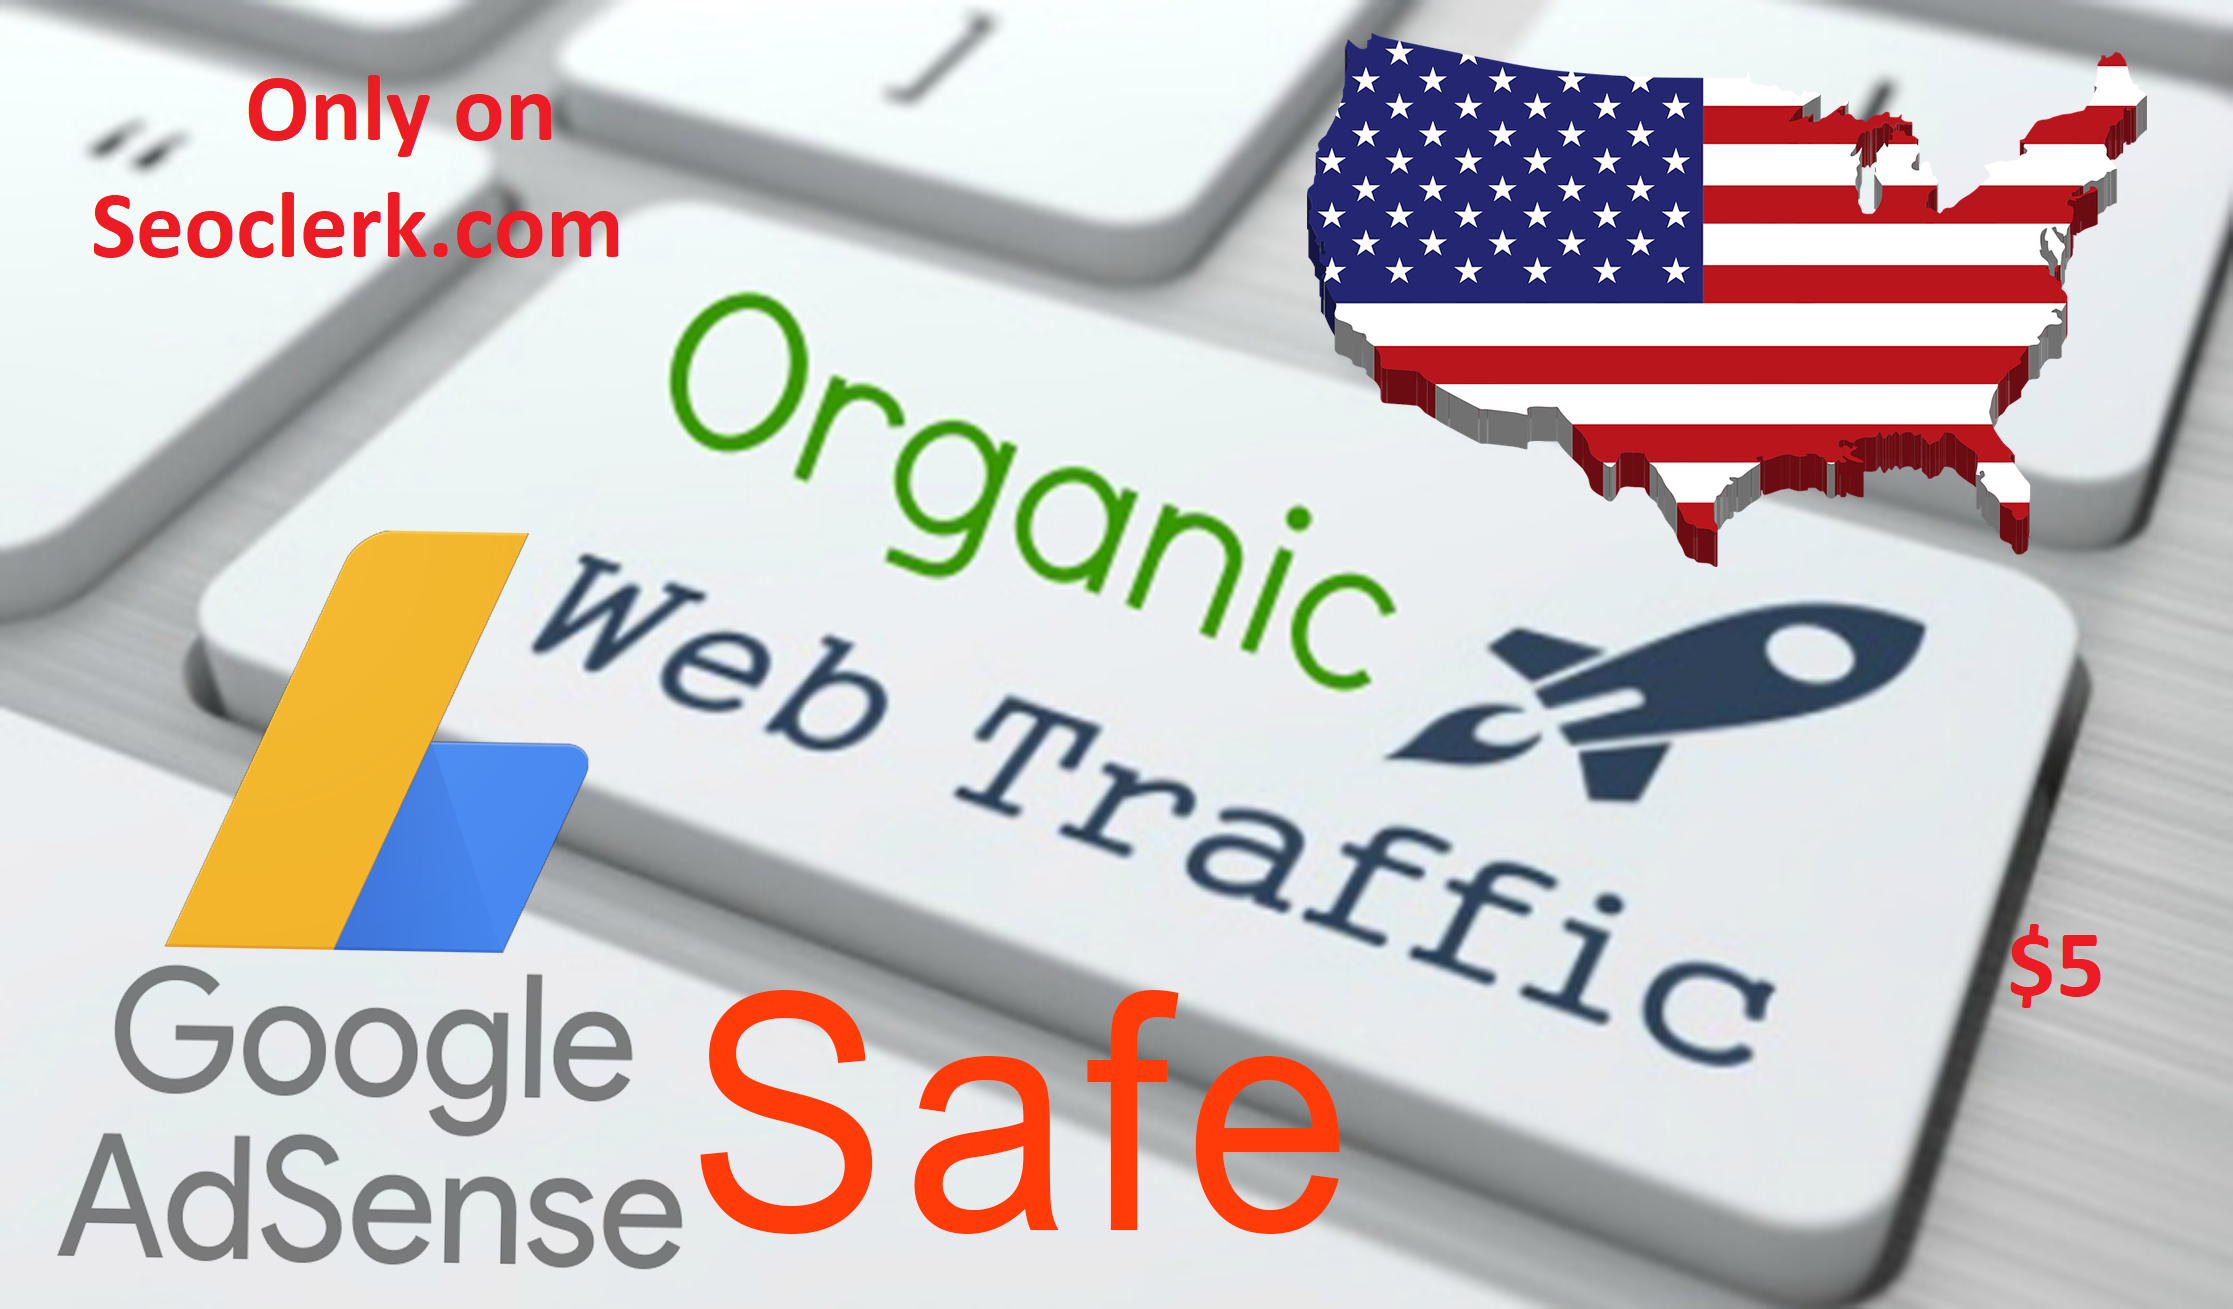 USA keyword target Adsense Safe ,organc traffic ,for 30 days